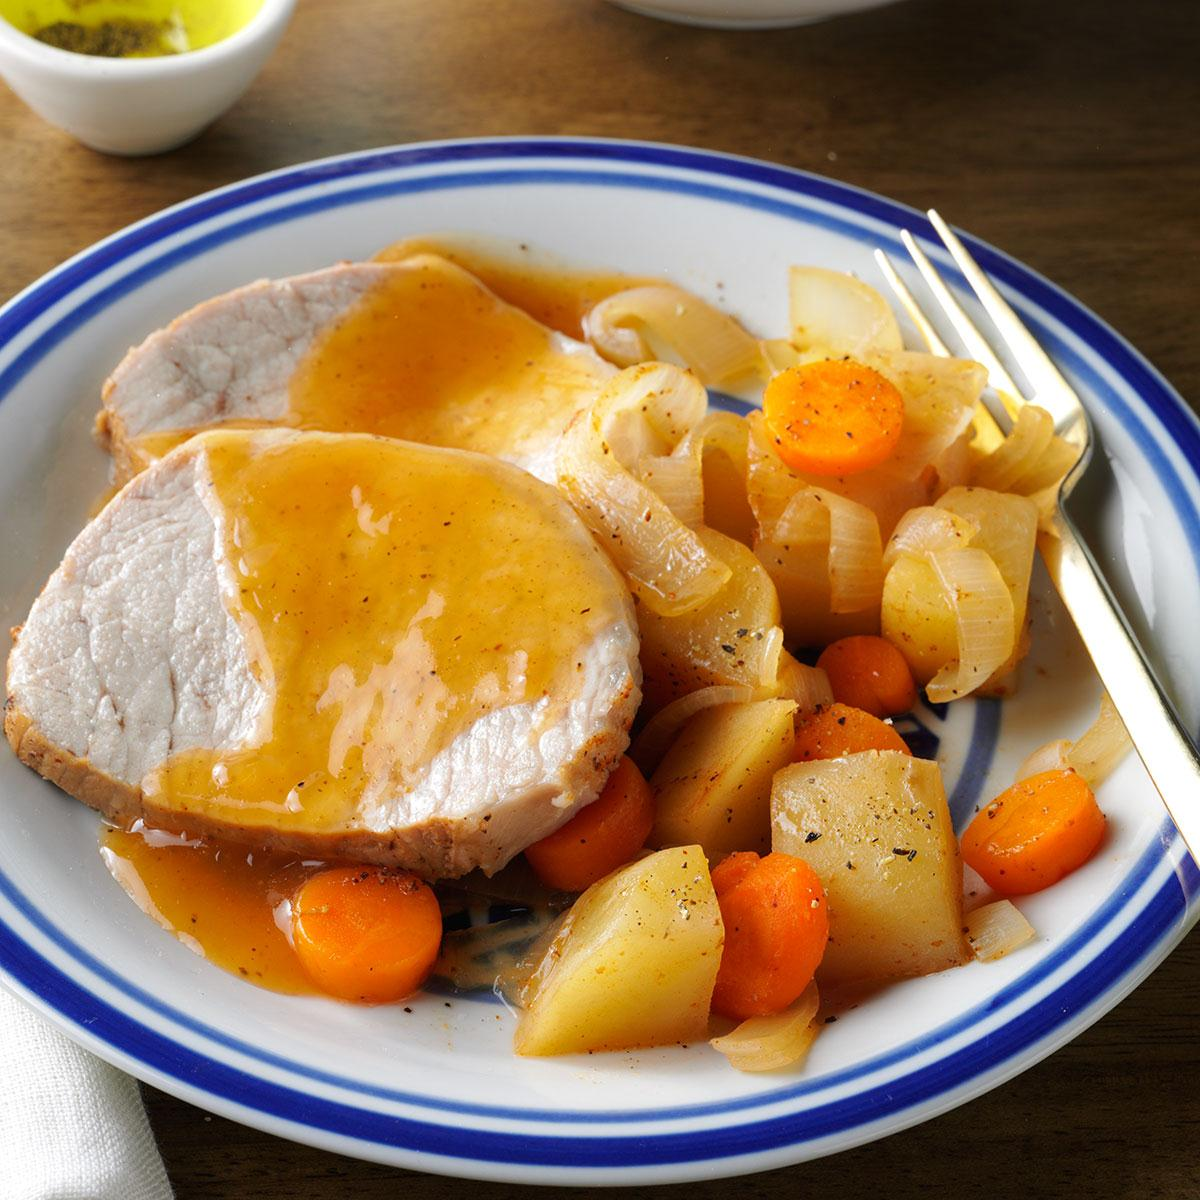 Slow Cooked Pork Roast Dinner Recipe How To Make It Taste Of Home